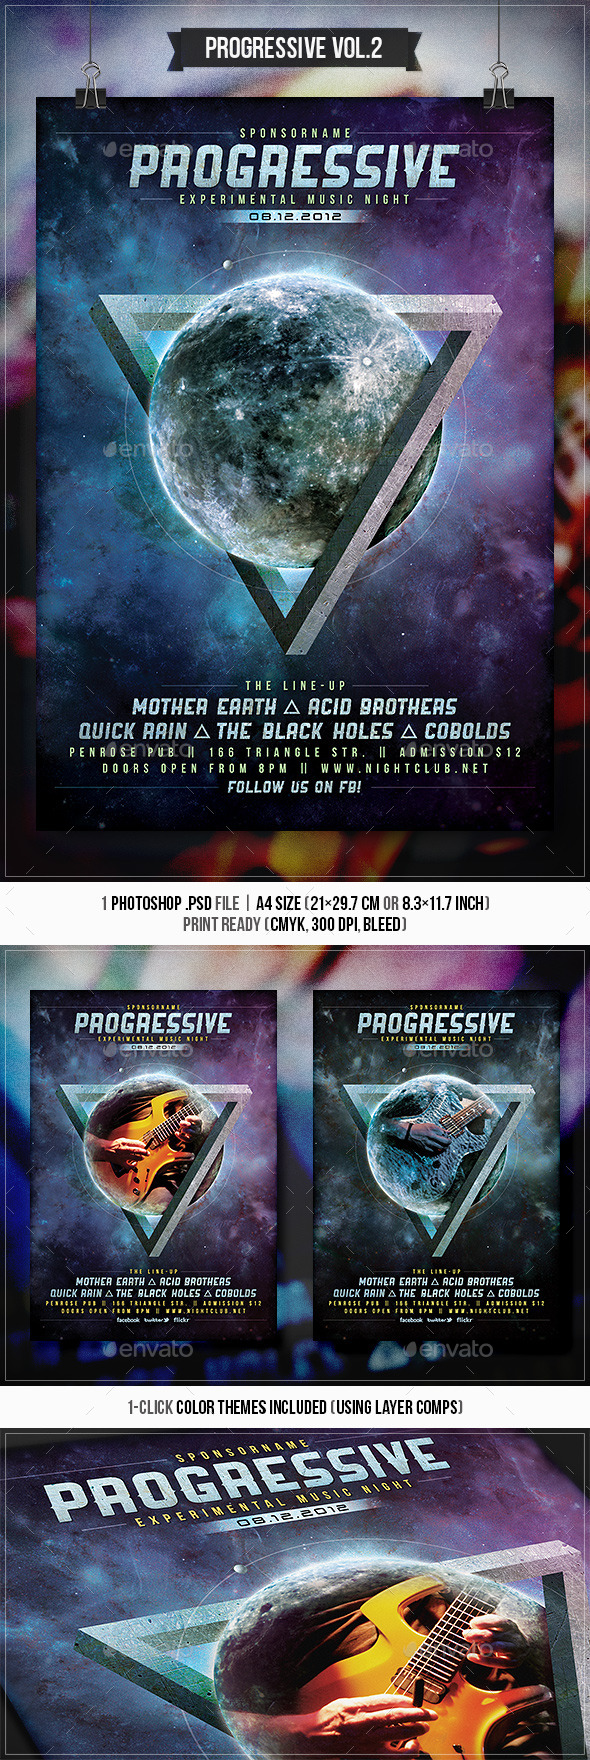 Progressive Rock Vol.2 - Flyer & Poster - Concerts Events